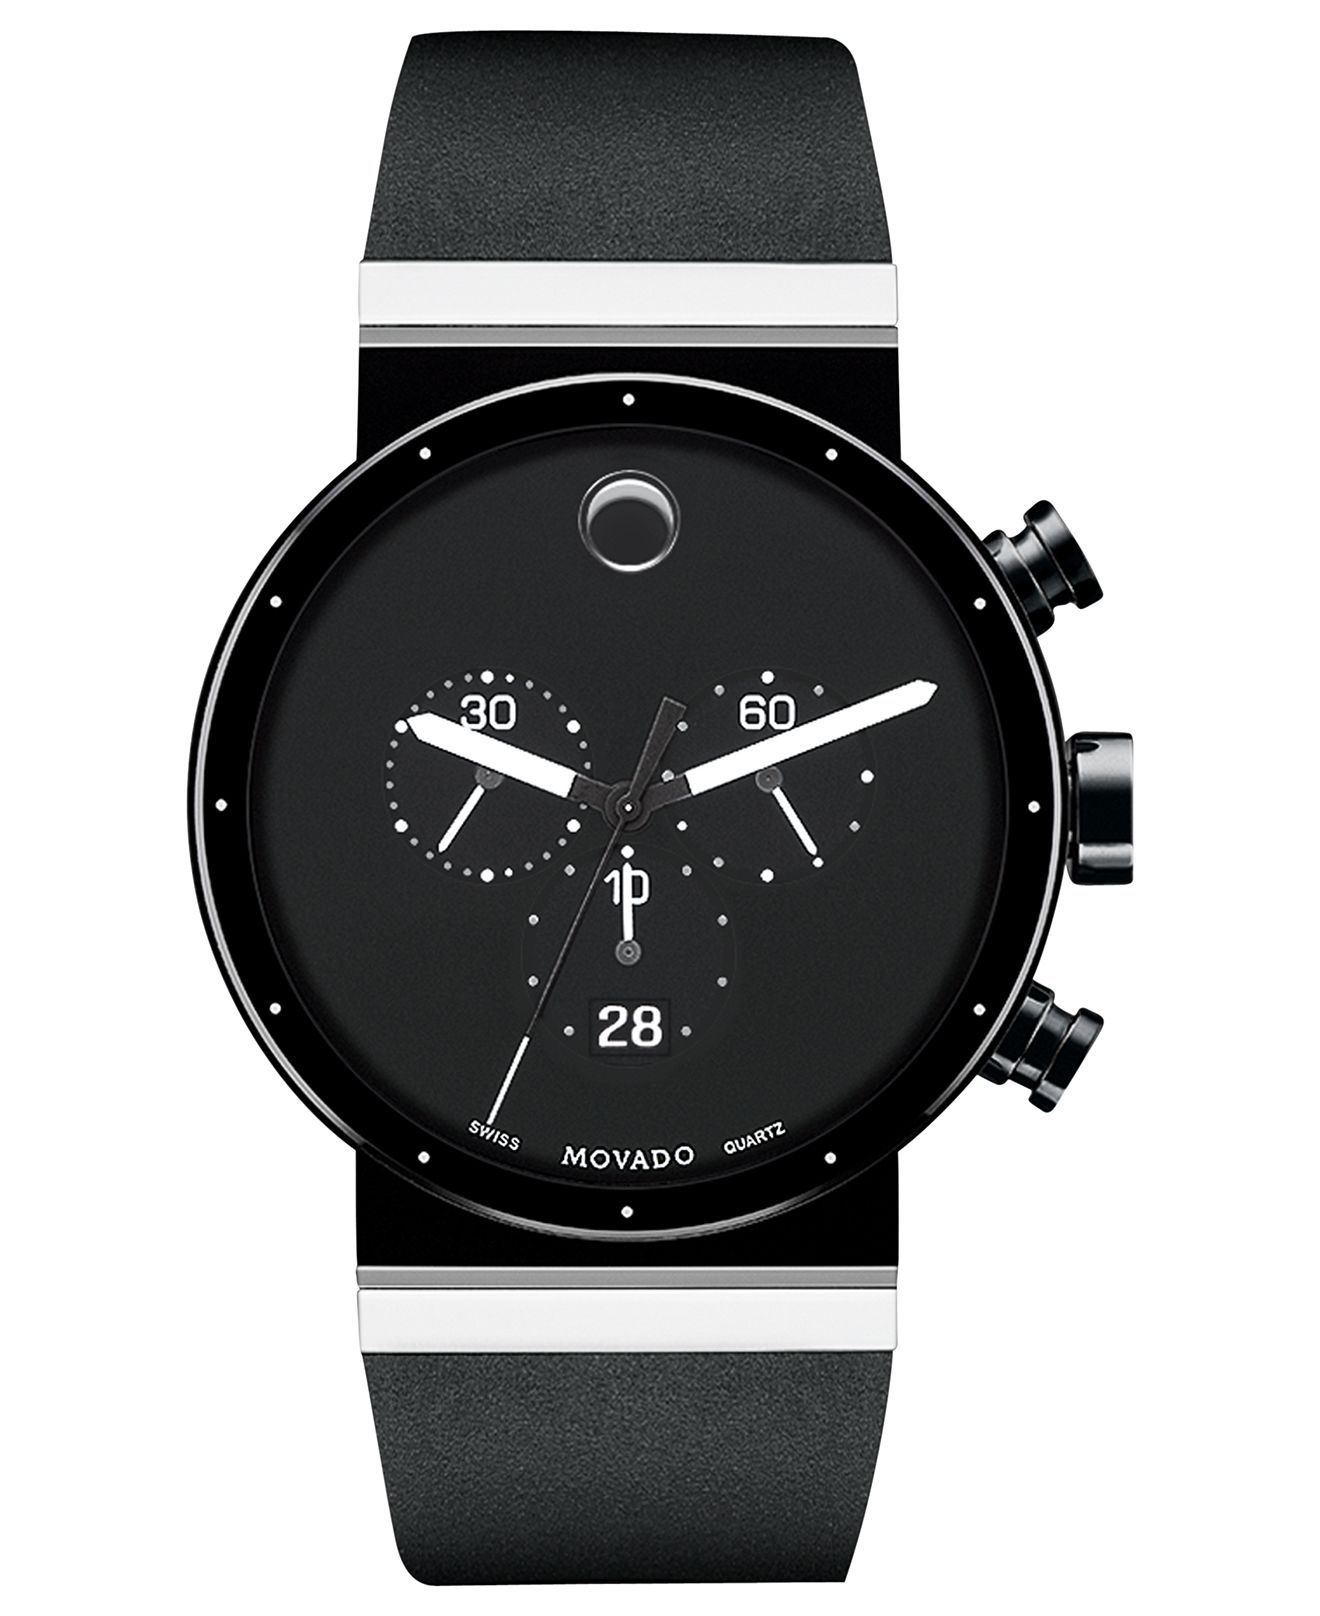 Movado Watch, Men's Swiss Chronograph Sapphire Synergy Black Rubber Strap 42mm 0606501 - Movado - Jewelry & Watches - Macy's